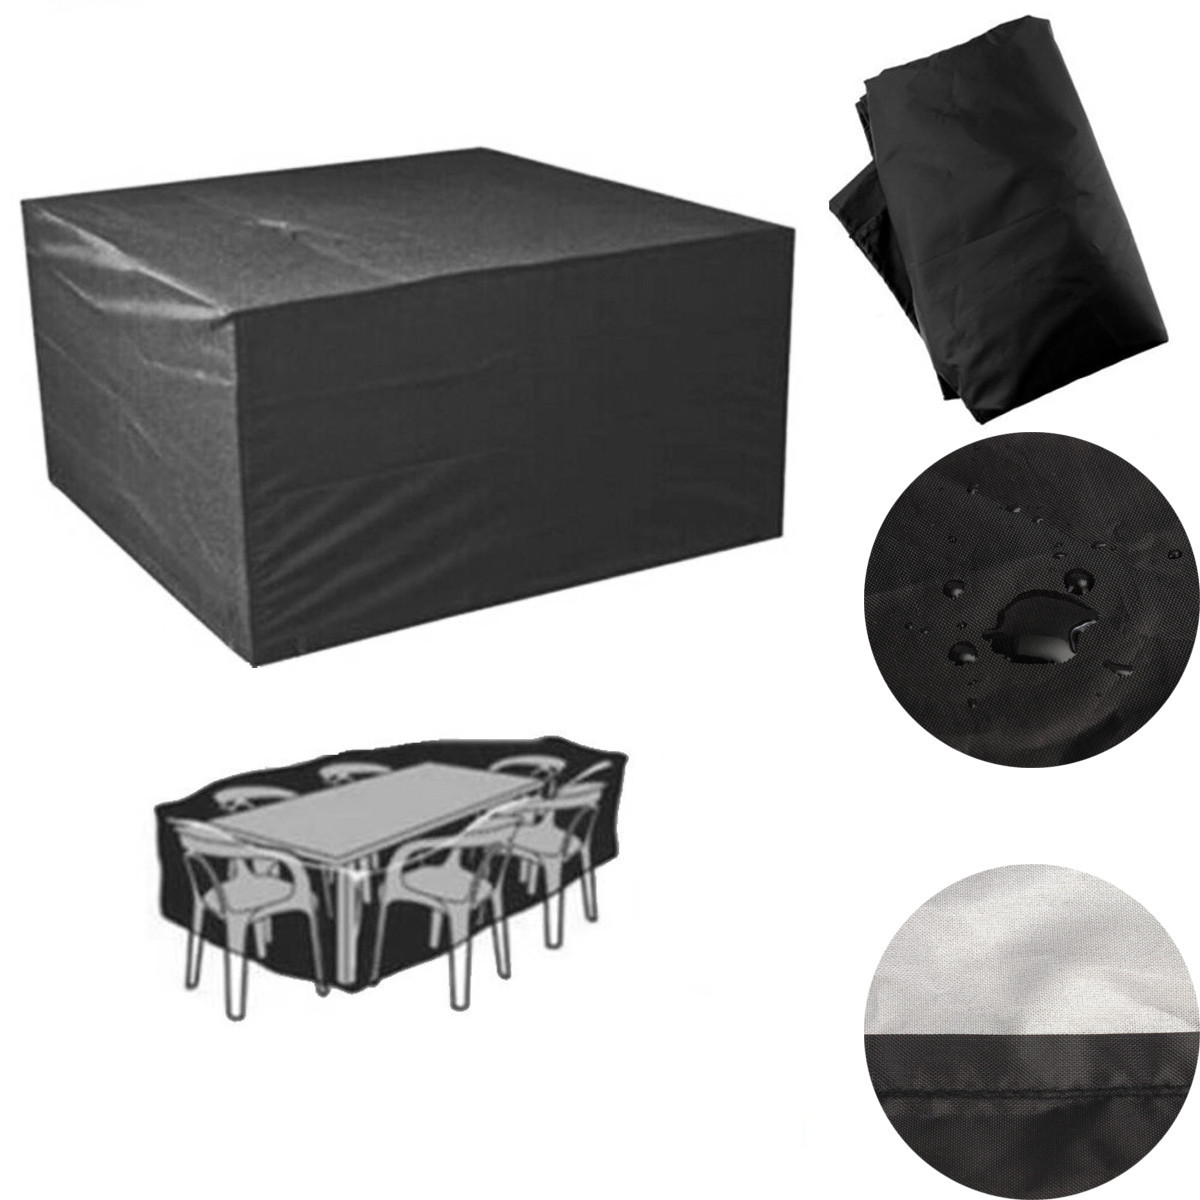 Black Outdoor Patio Polyester Furniture Cover Waterproof 6 Seater Table Chair Table Cloth Dustproof Garden Furniture